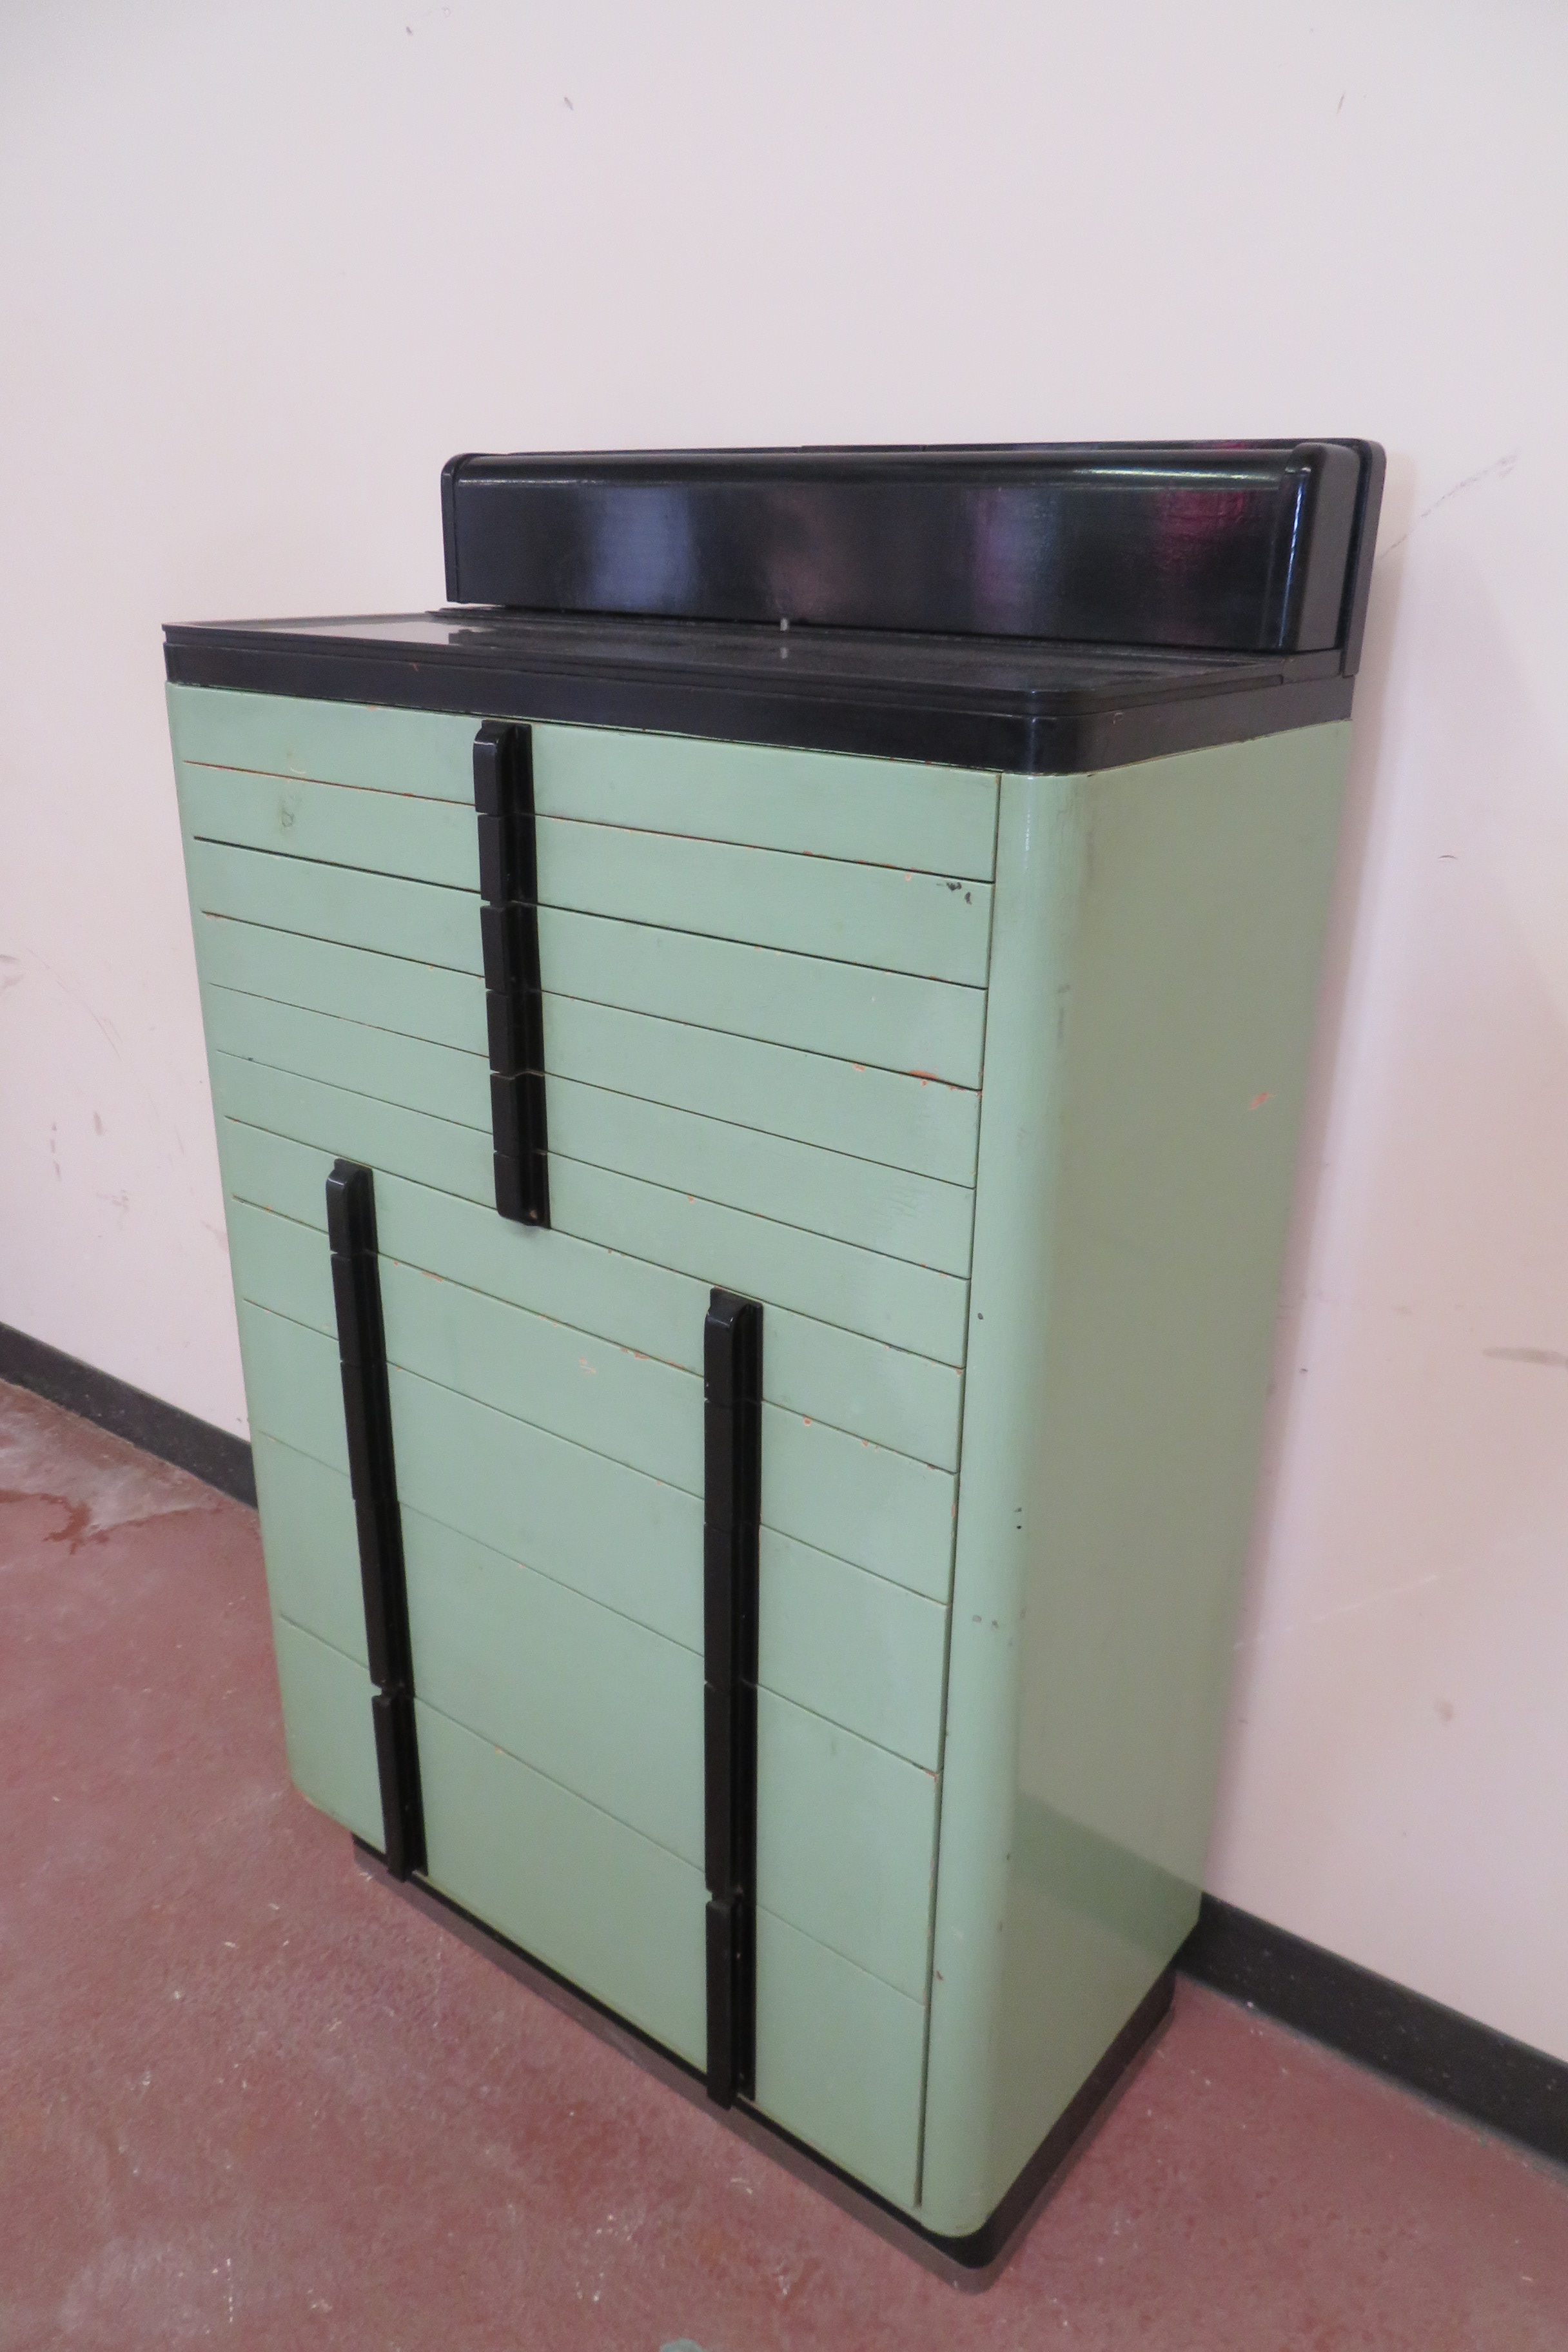 Superieur Very Cool Retro (maybe Art Deco) Dental Cabinet In Pale Mint Green U0026 Black